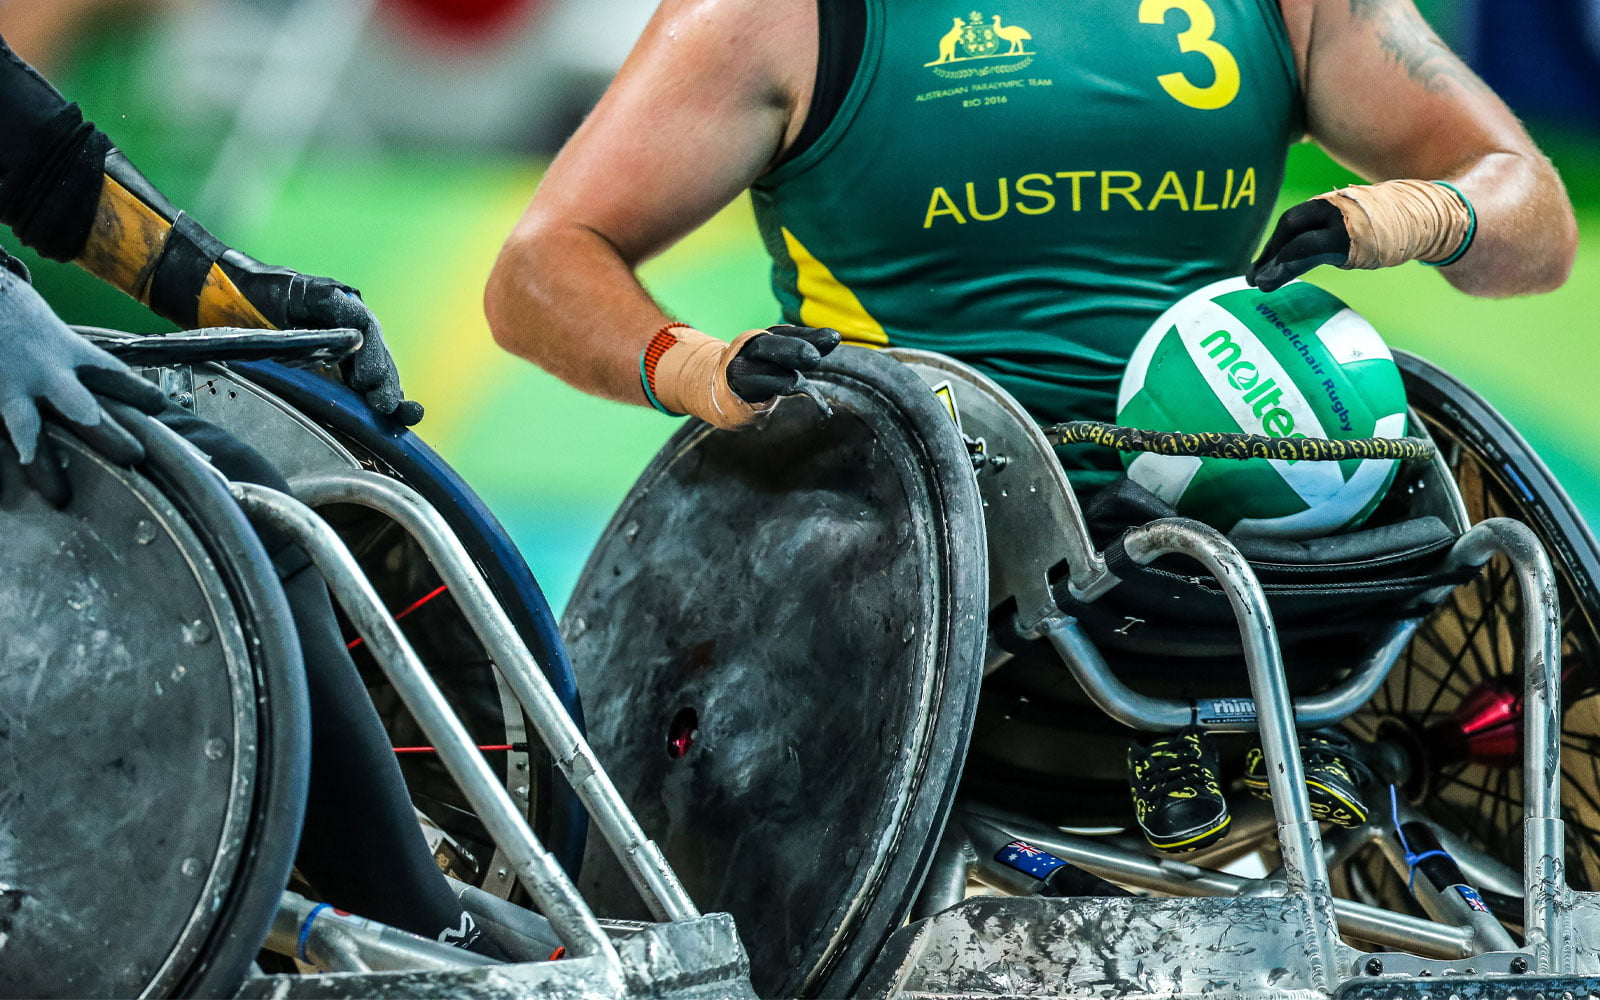 Brisbane Confirmed As 2032 Paralympic Games Host City